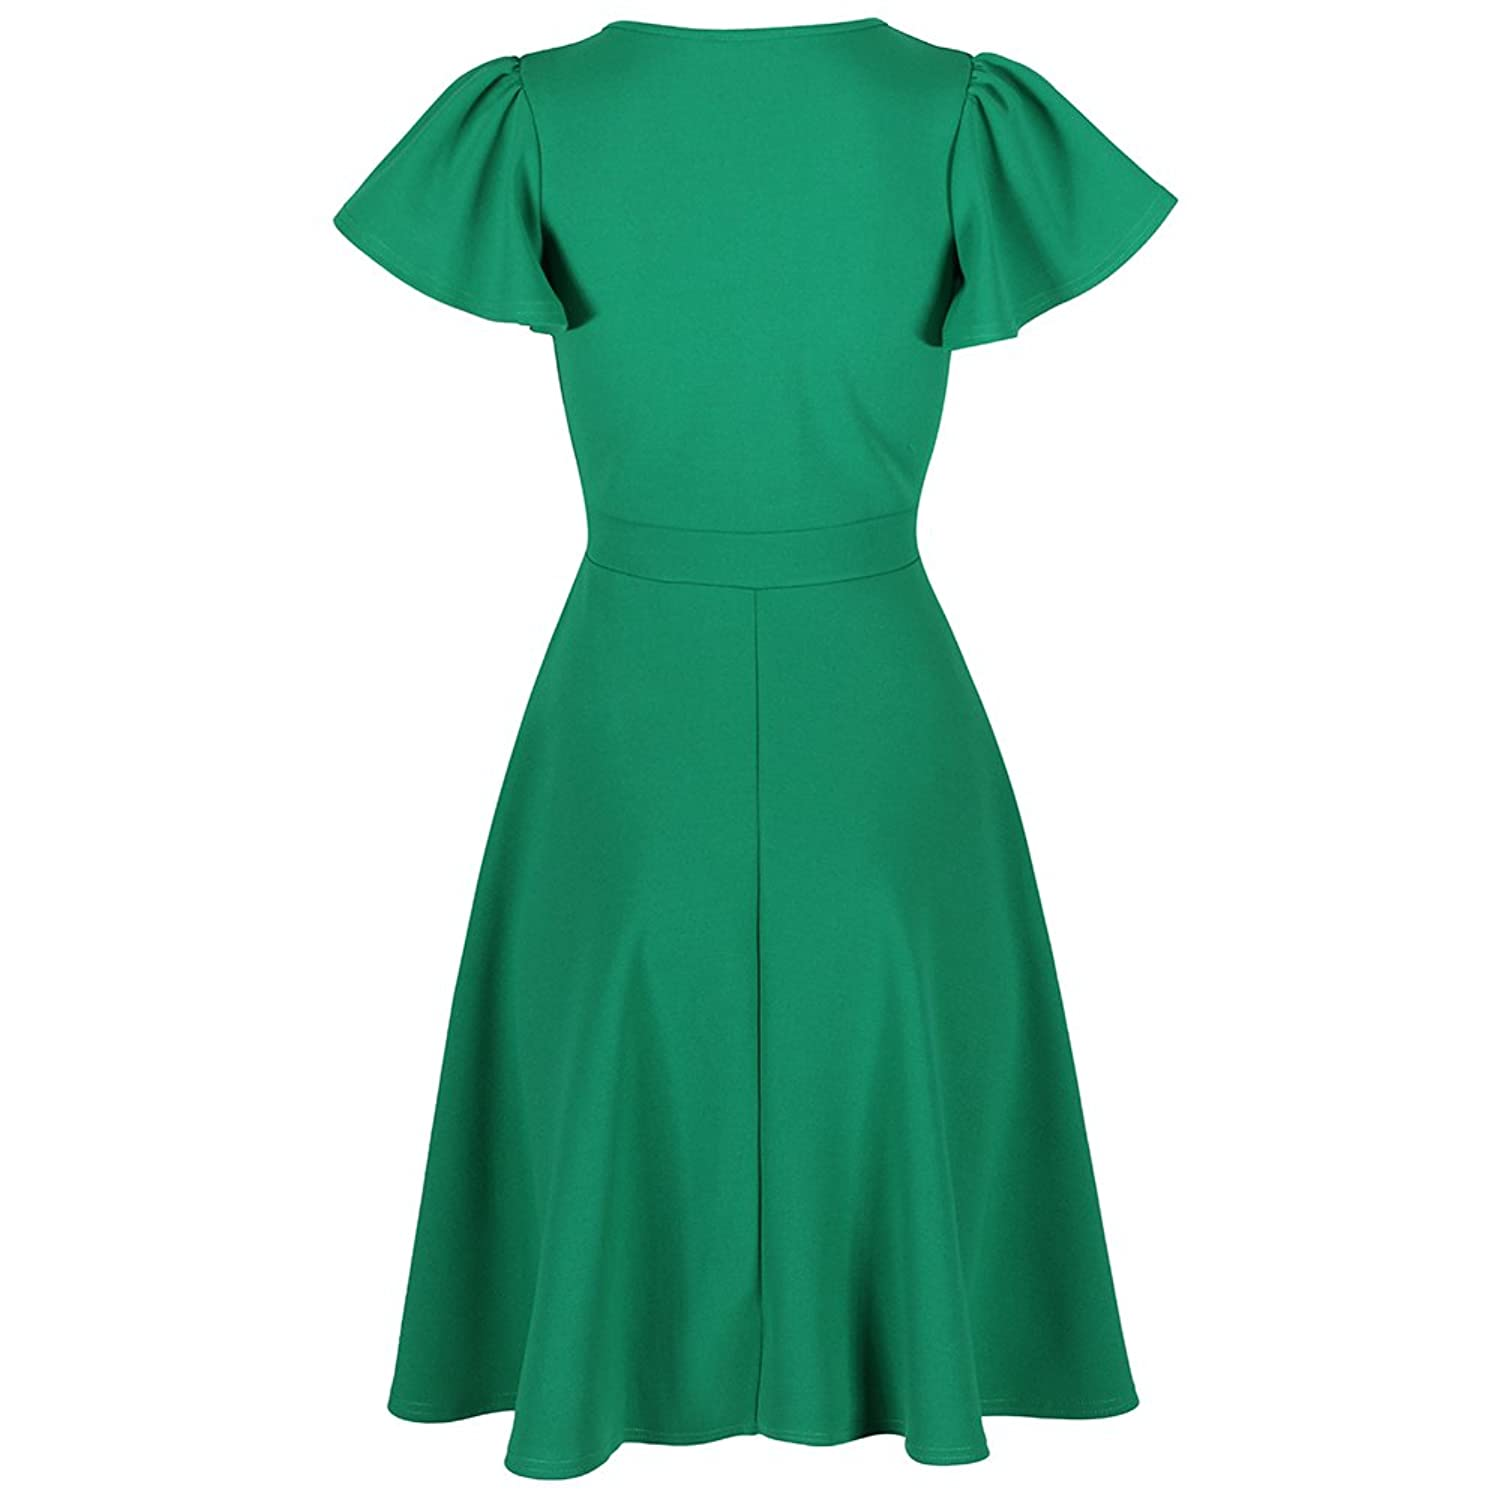 5c39e4542a49 Pretty Kitty Fashion Emerald Green Gathered Cap Sleeve Crossover Dress:  Amazon.co.uk: Clothing